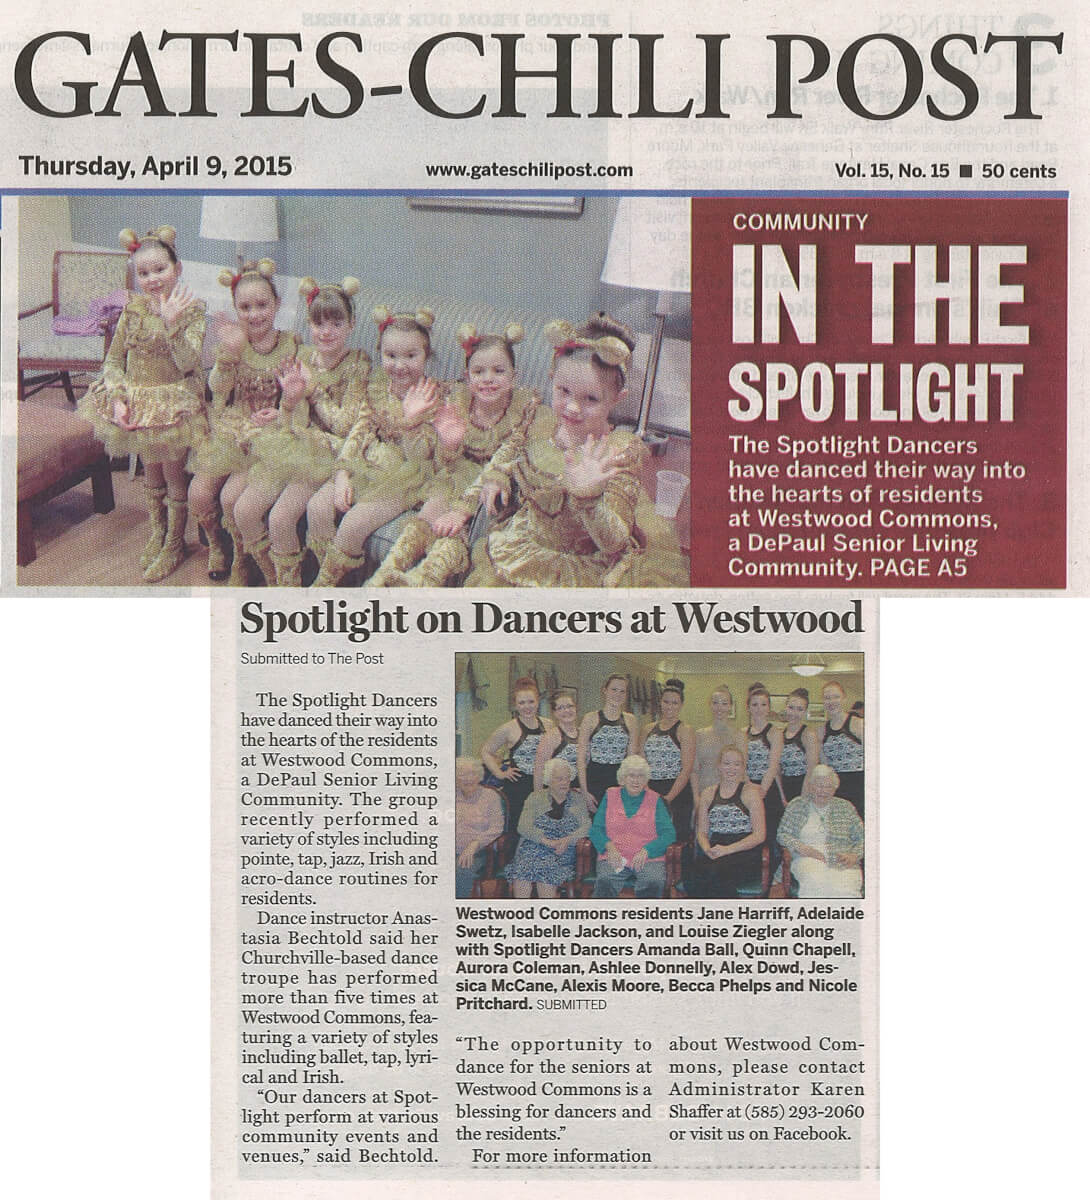 Westwood Commons get a visit from the Spotlight Dancers article in the Gates Chili Post on April 9, 2015